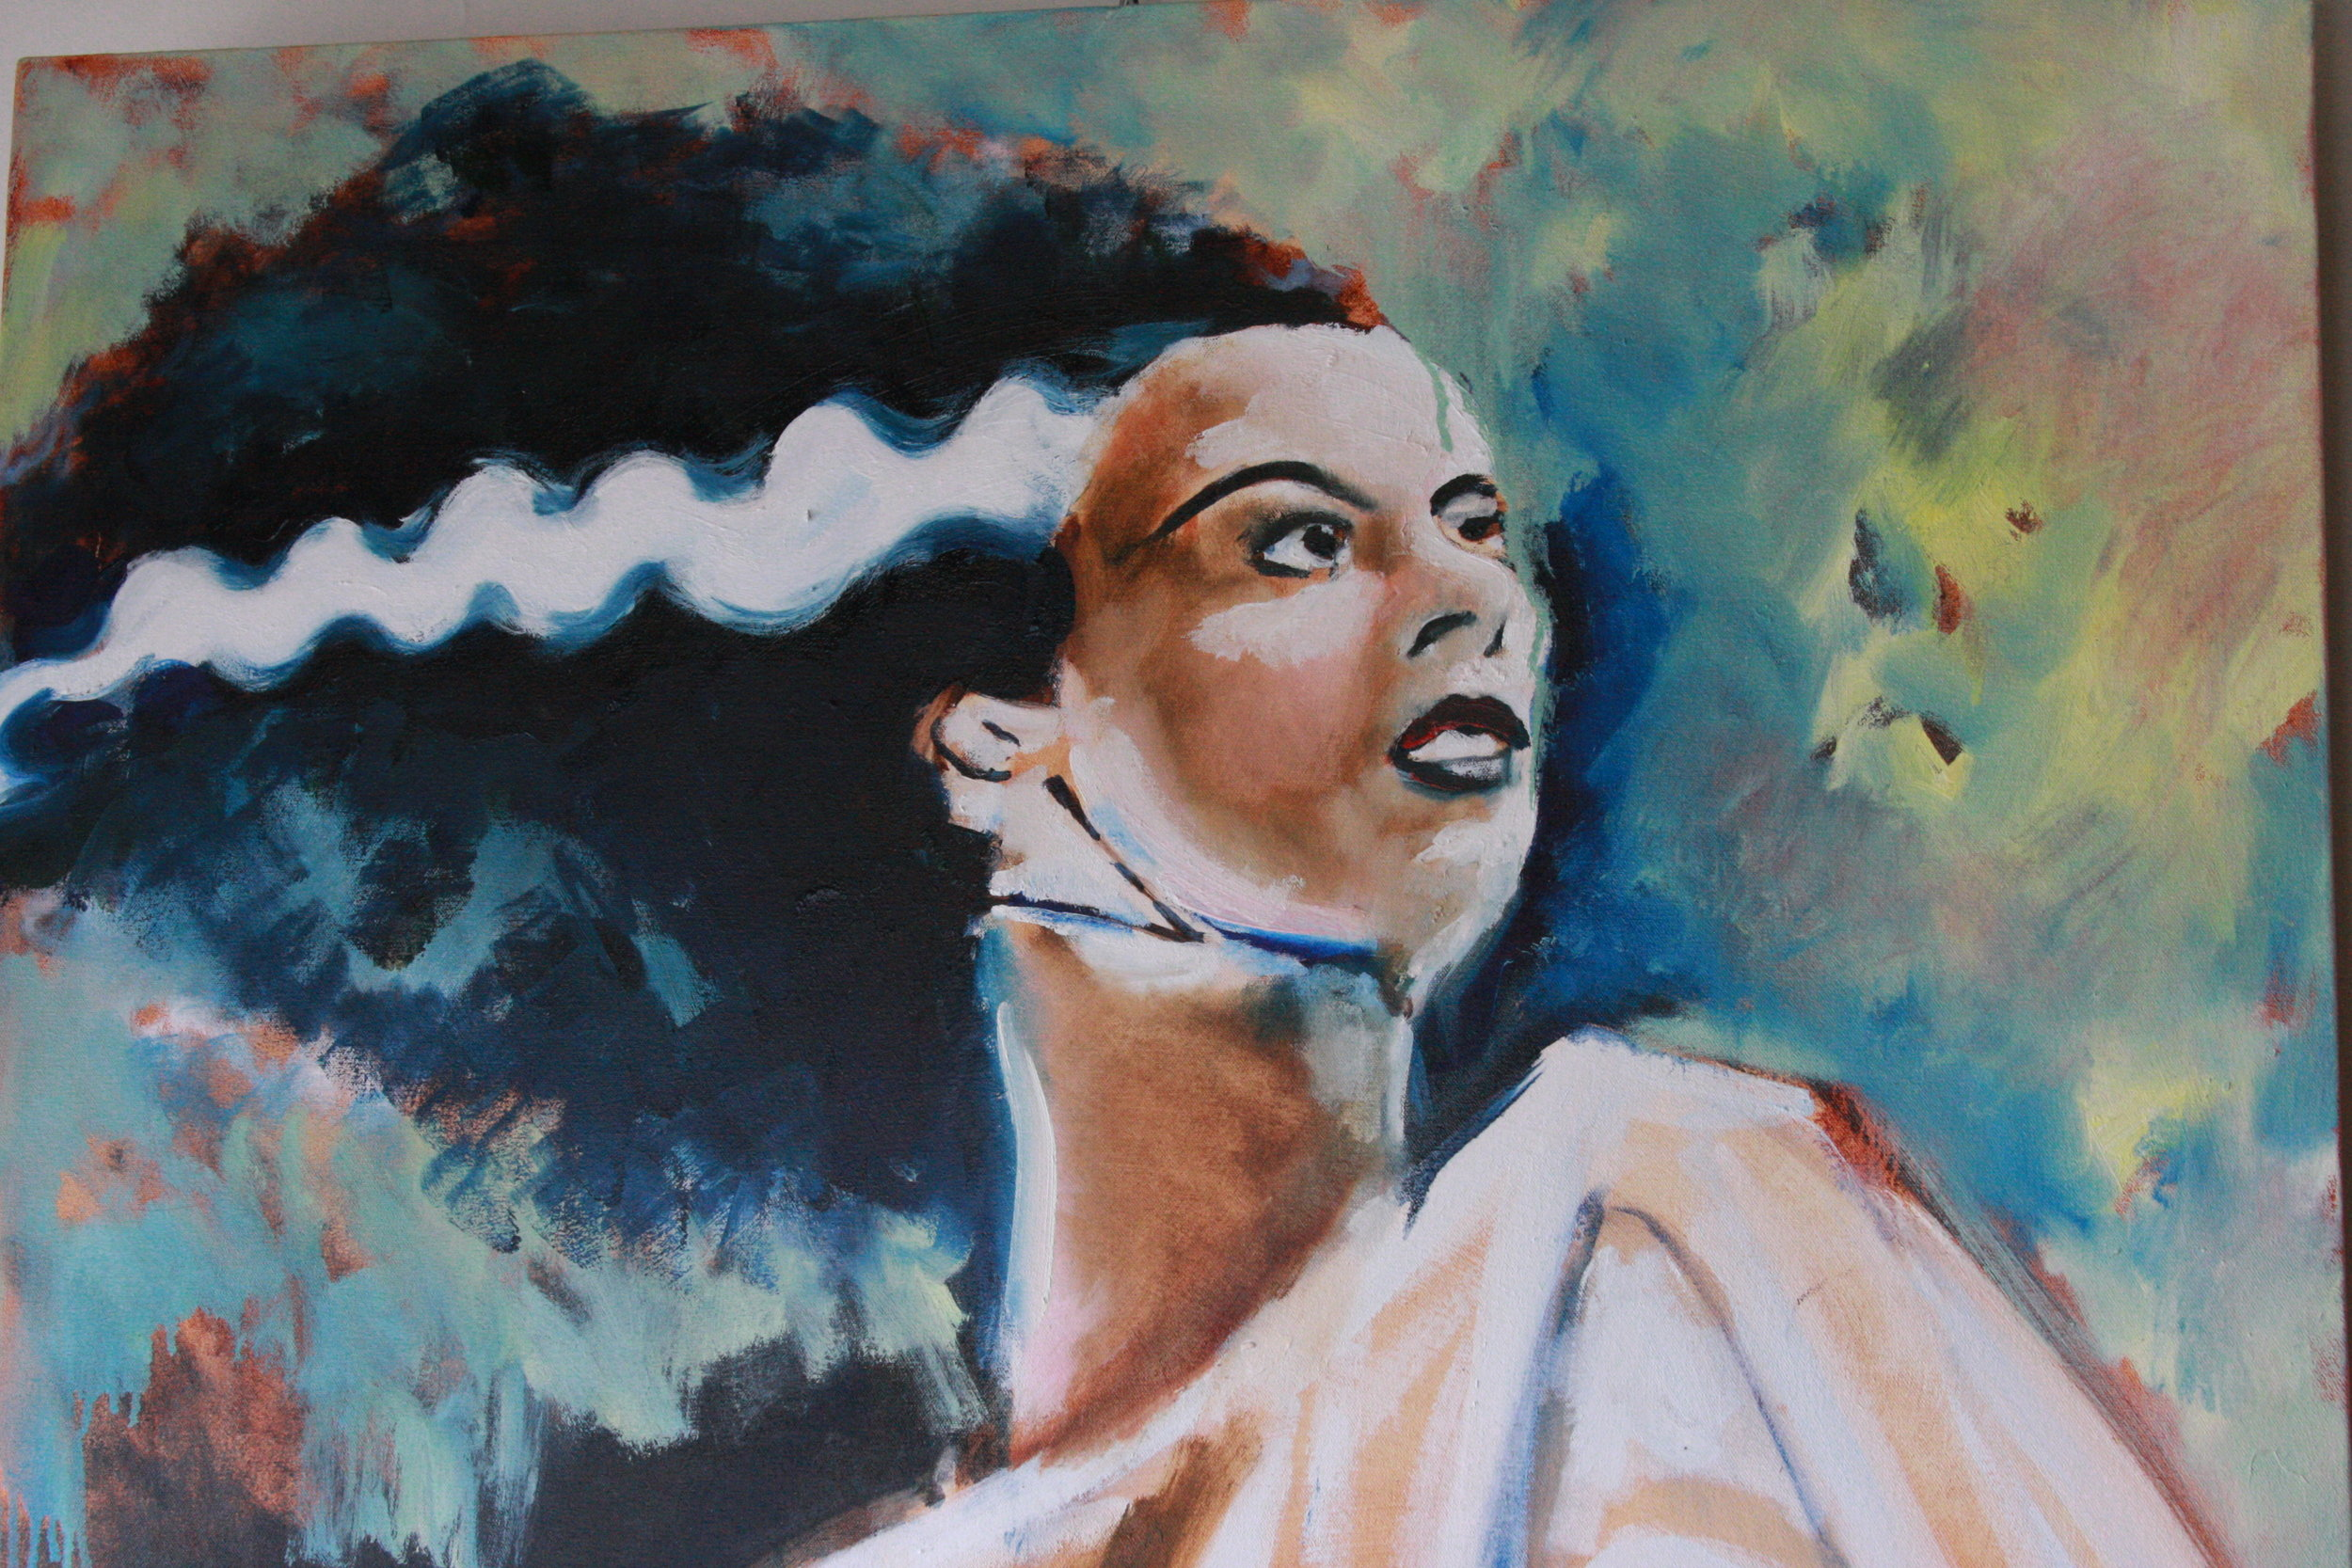 Bride of Frank oil on canvas SOLD 2011 2 x 3 feet.JPG